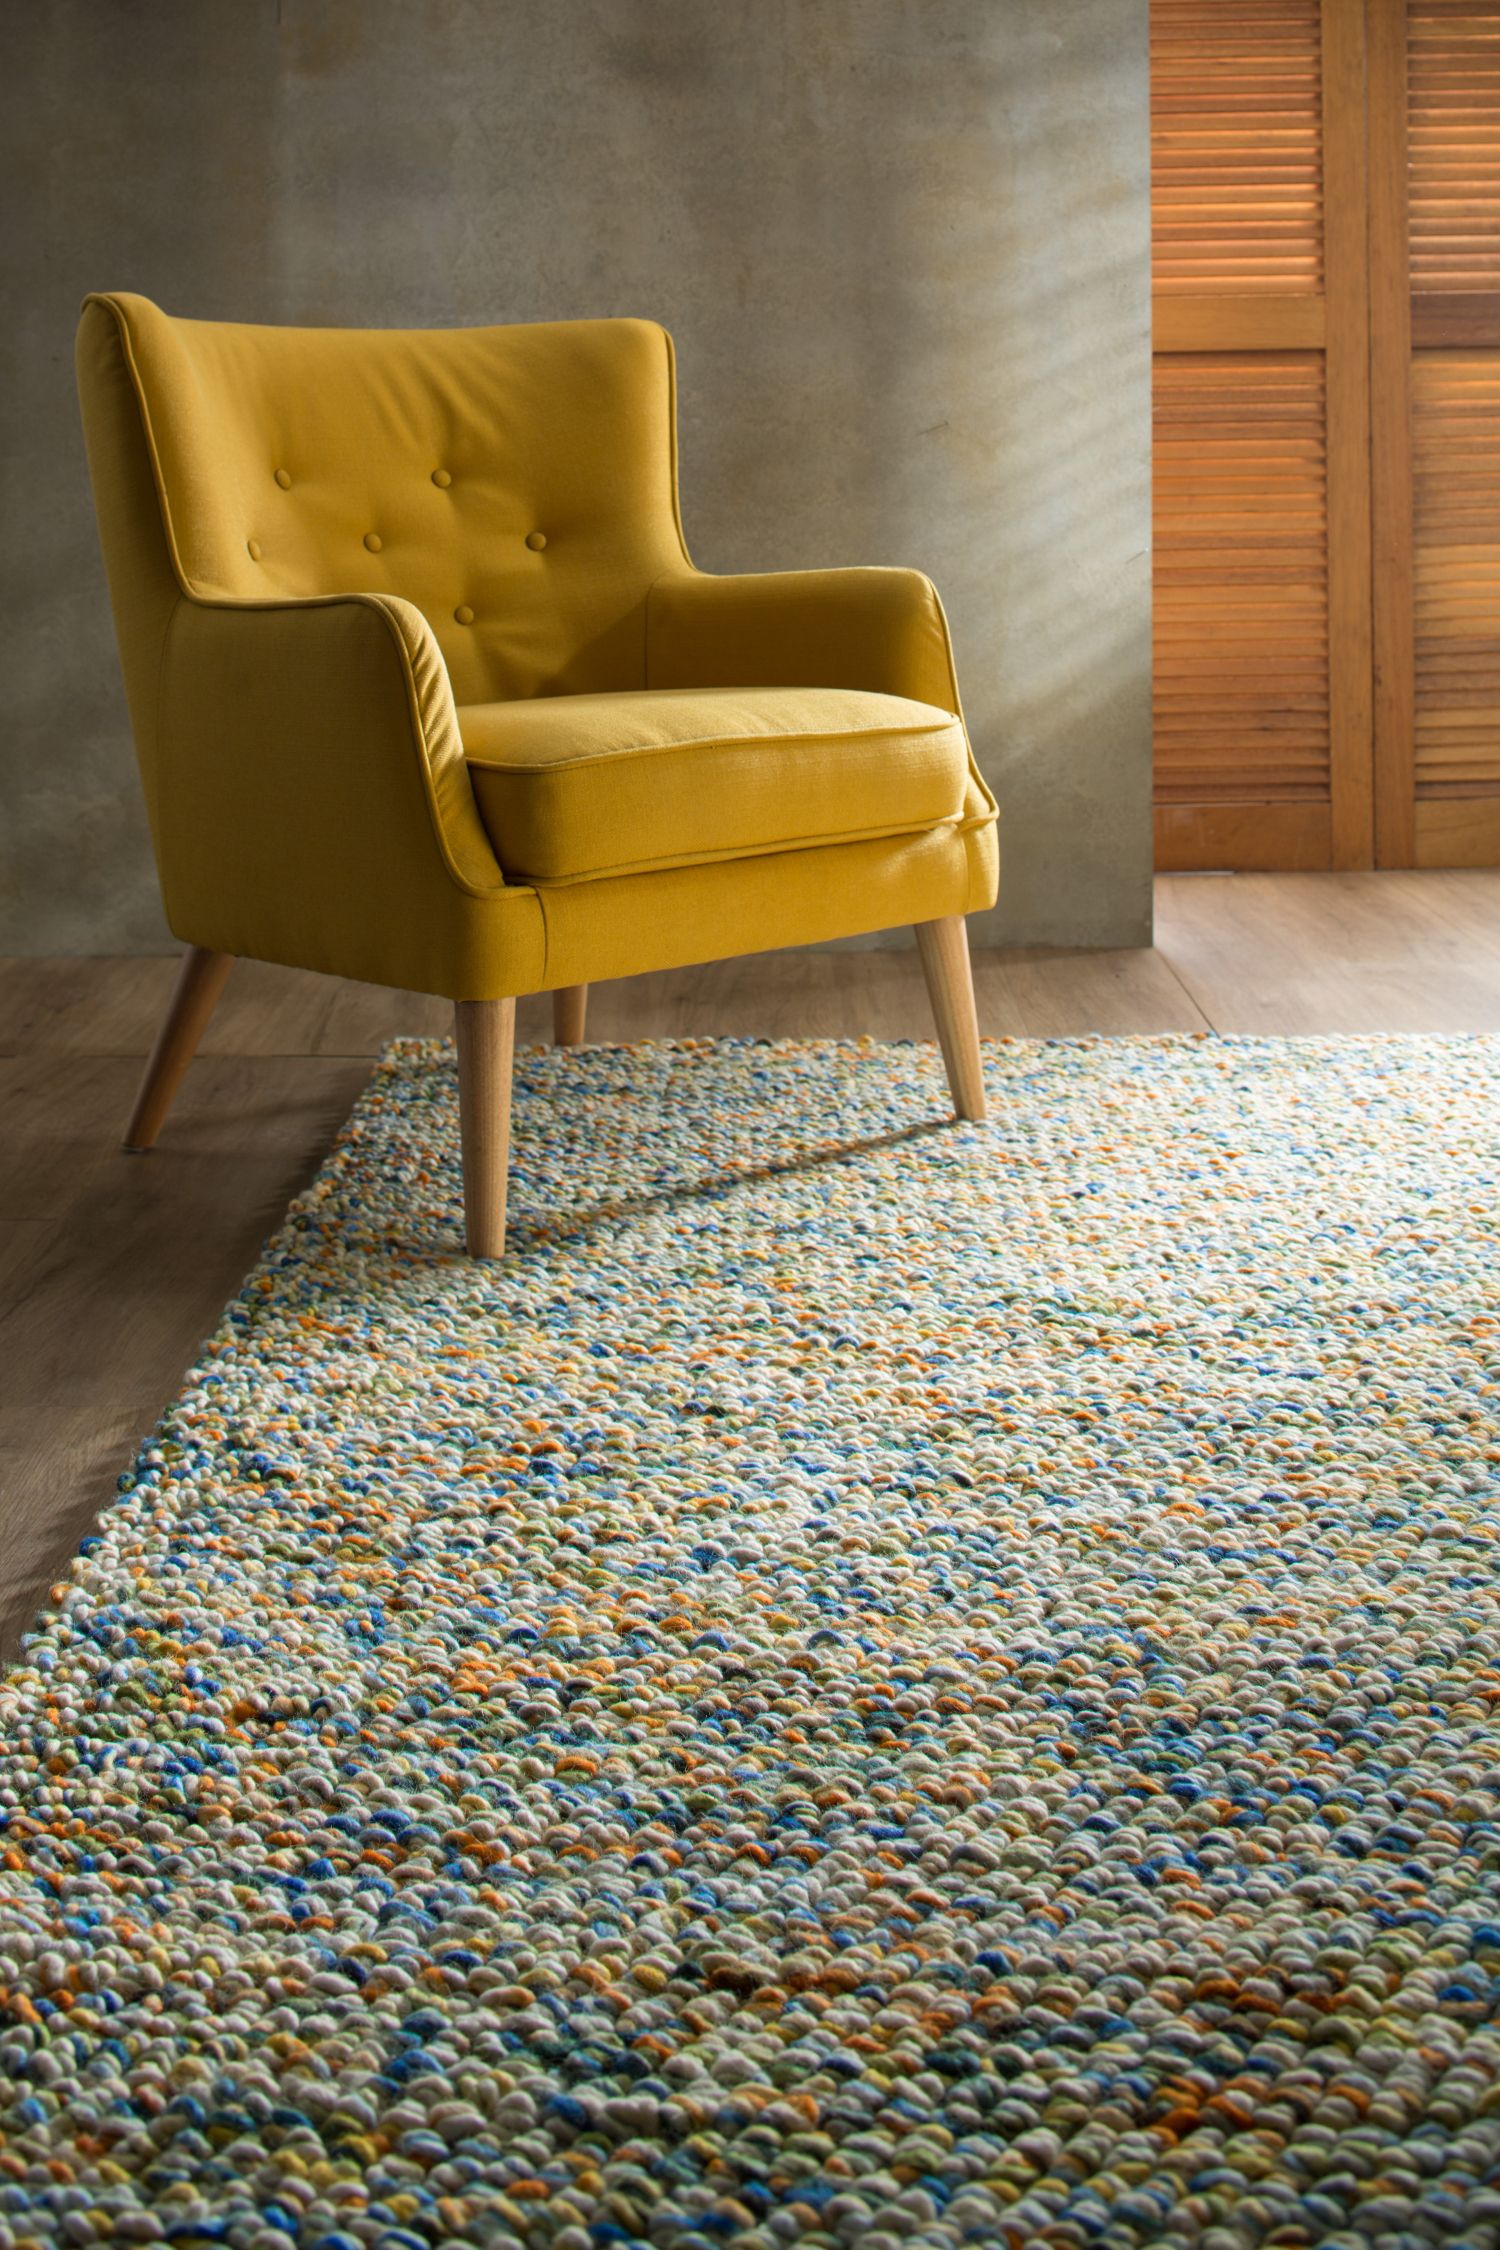 Volume textured rugs